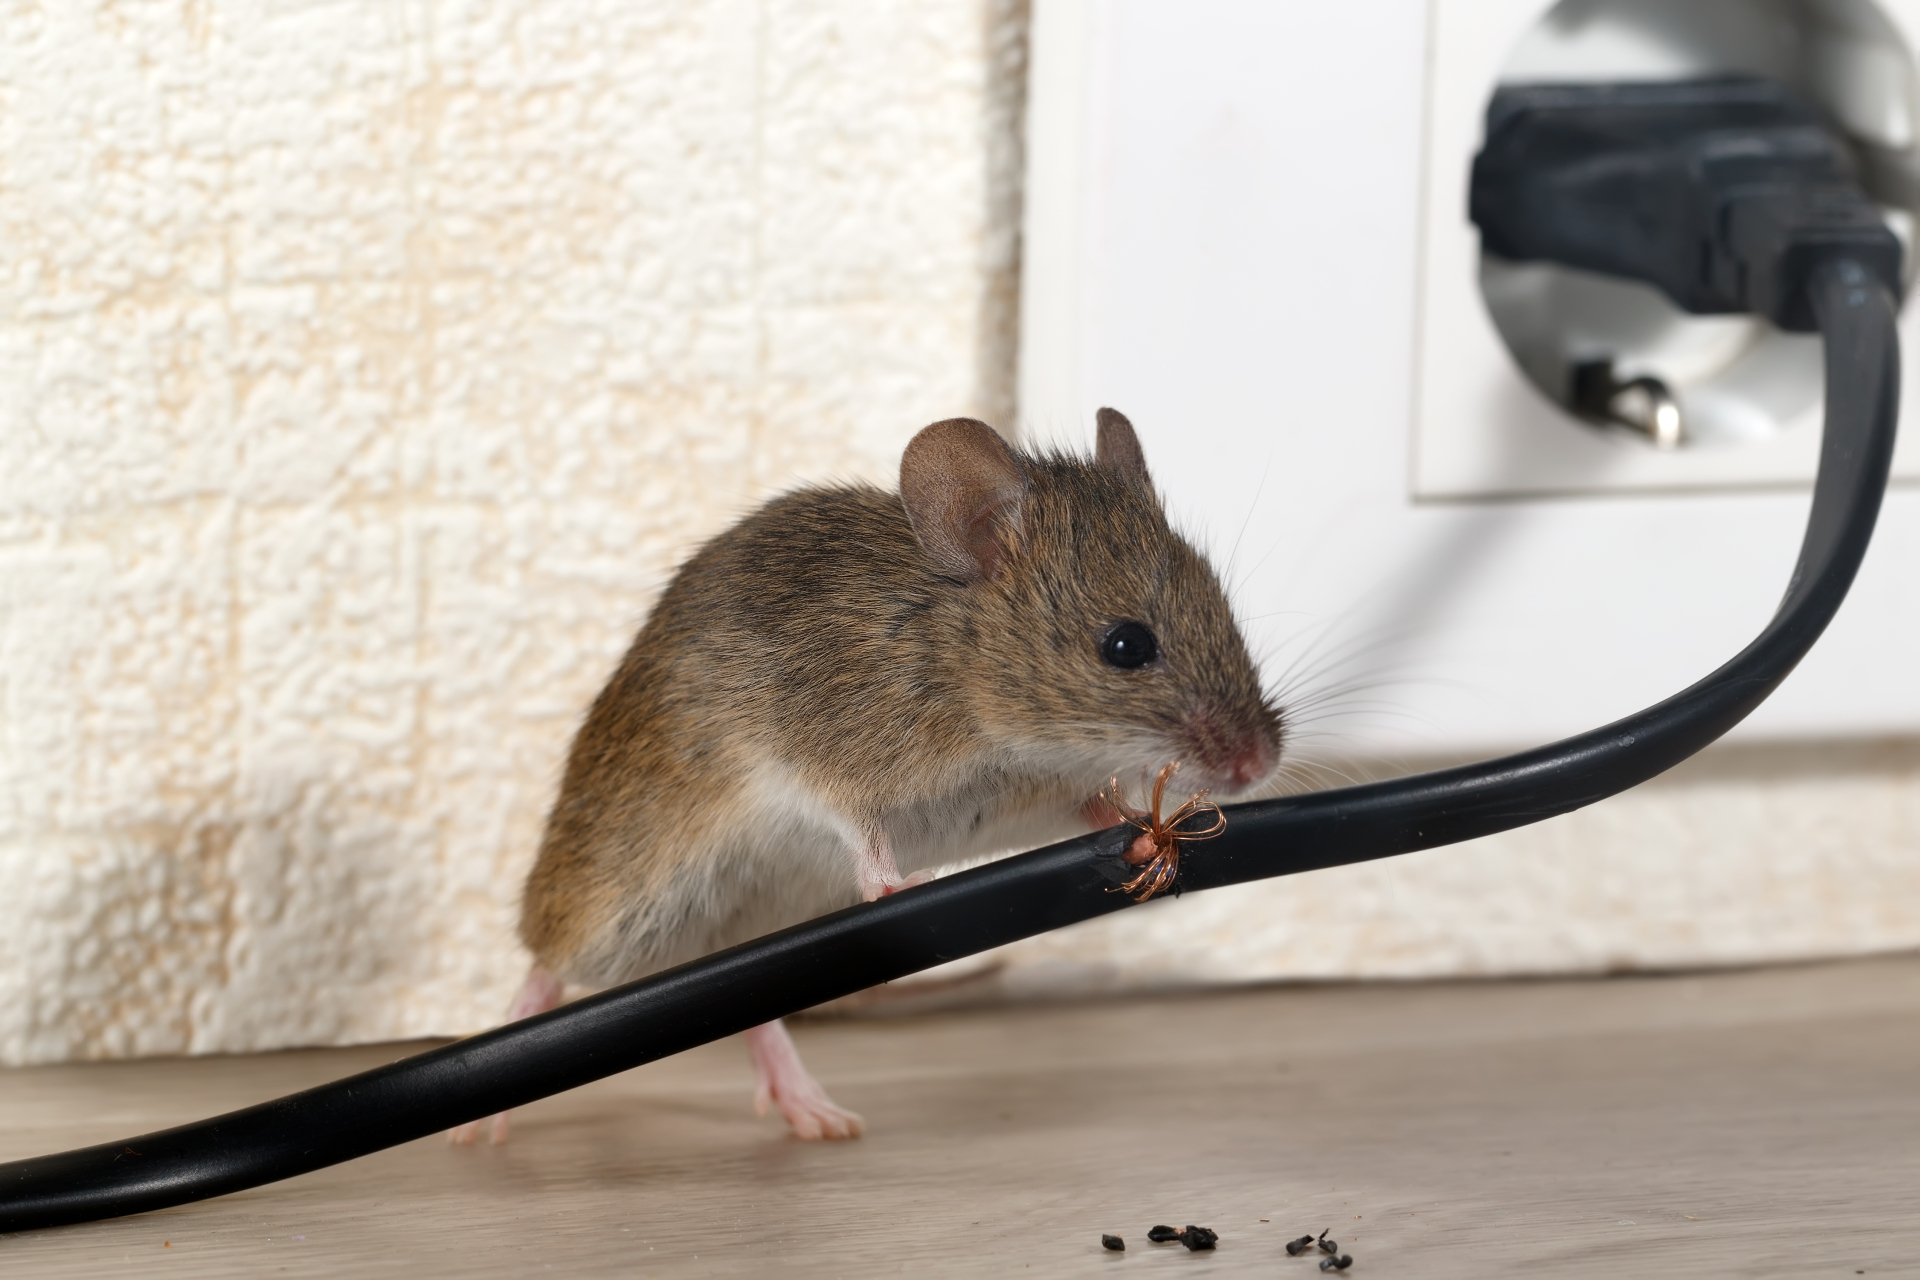 Mice Infestation, Pest Control in Ealing, W5. Call Now 020 8166 9746